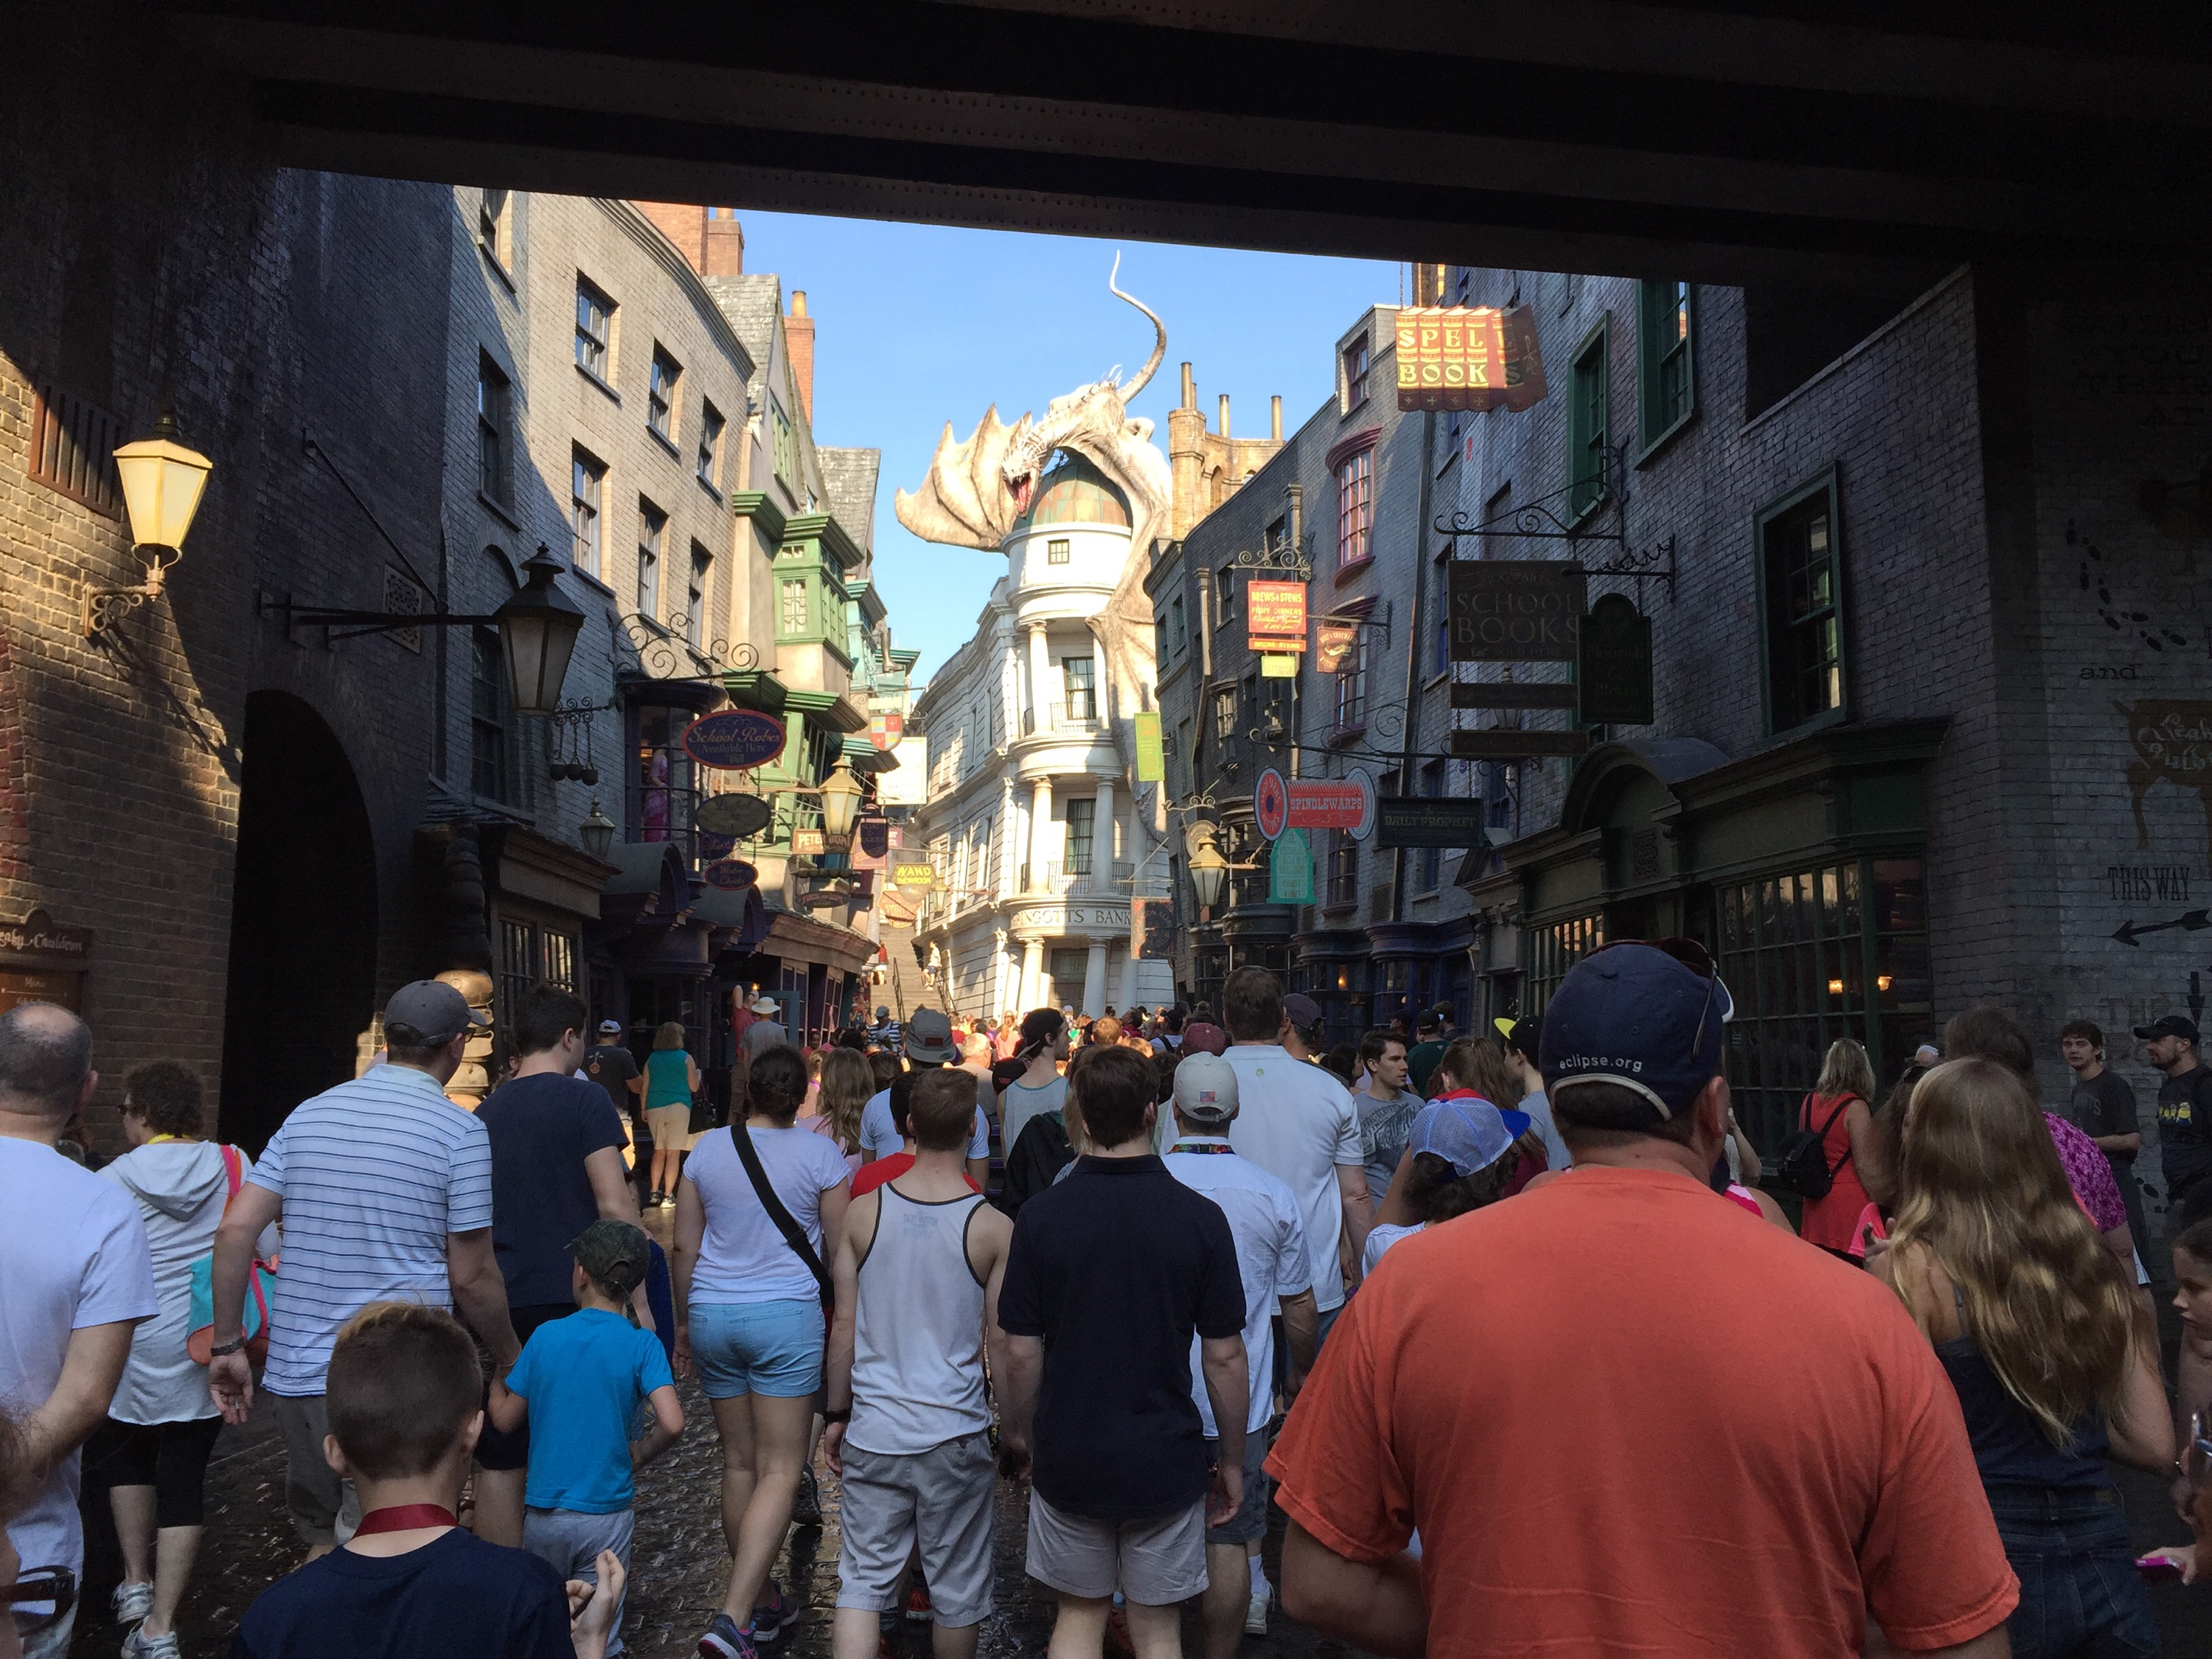 la entrada principal a Diagon Alley